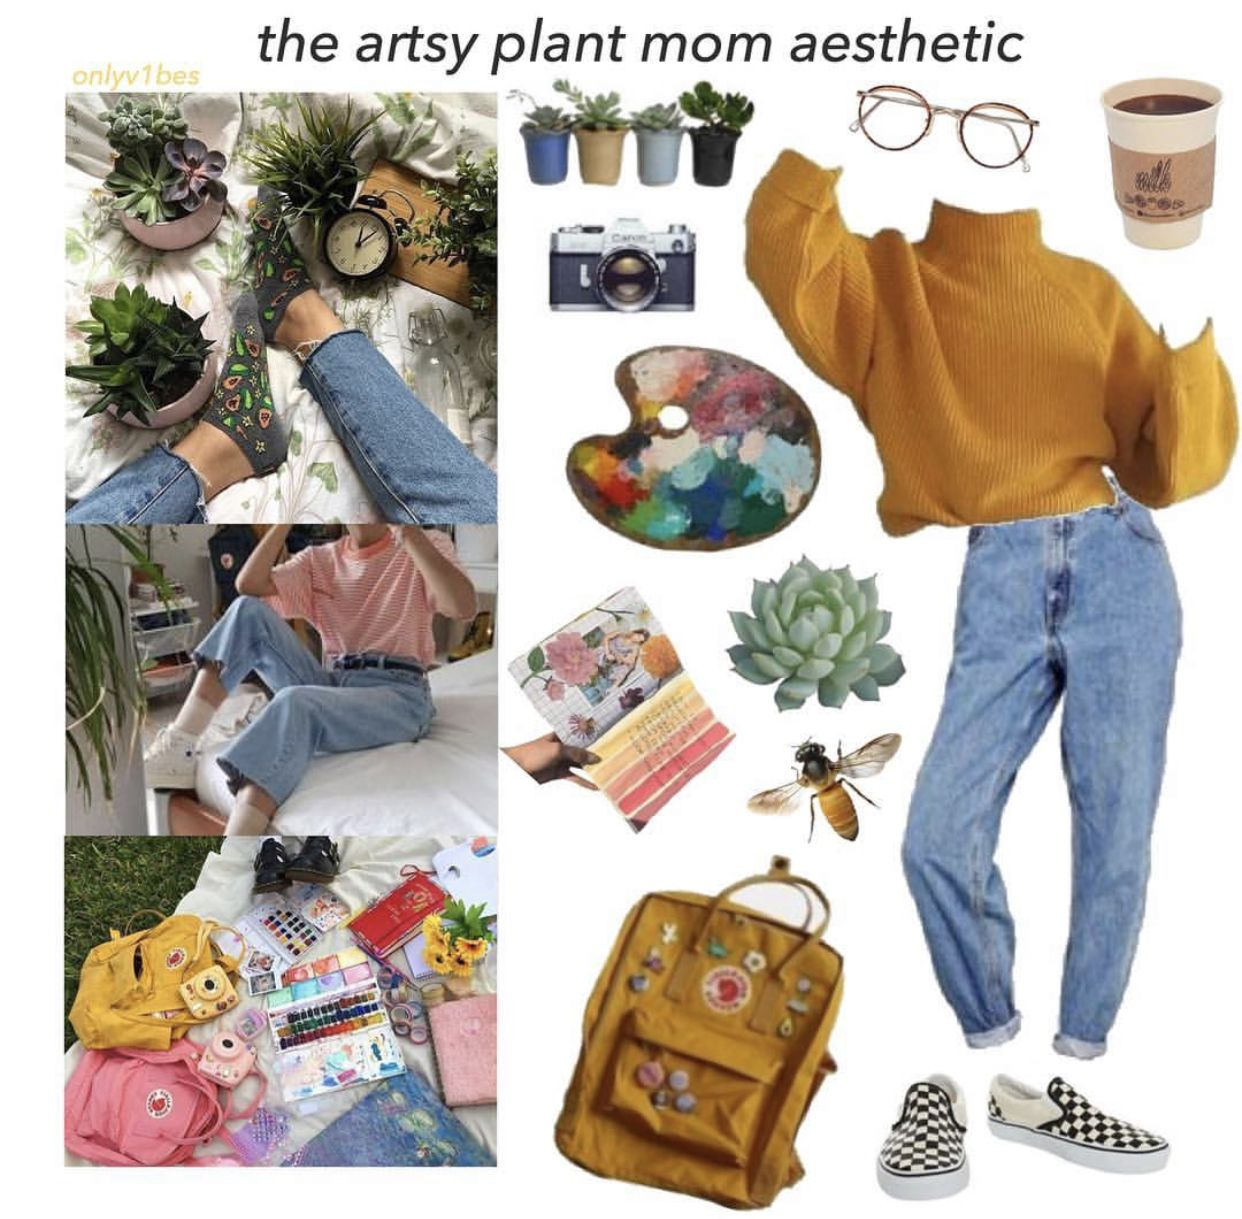 The Artsy Plant Mom Aesthetic Aesthetic Clothes Cool Outfits Cool Style